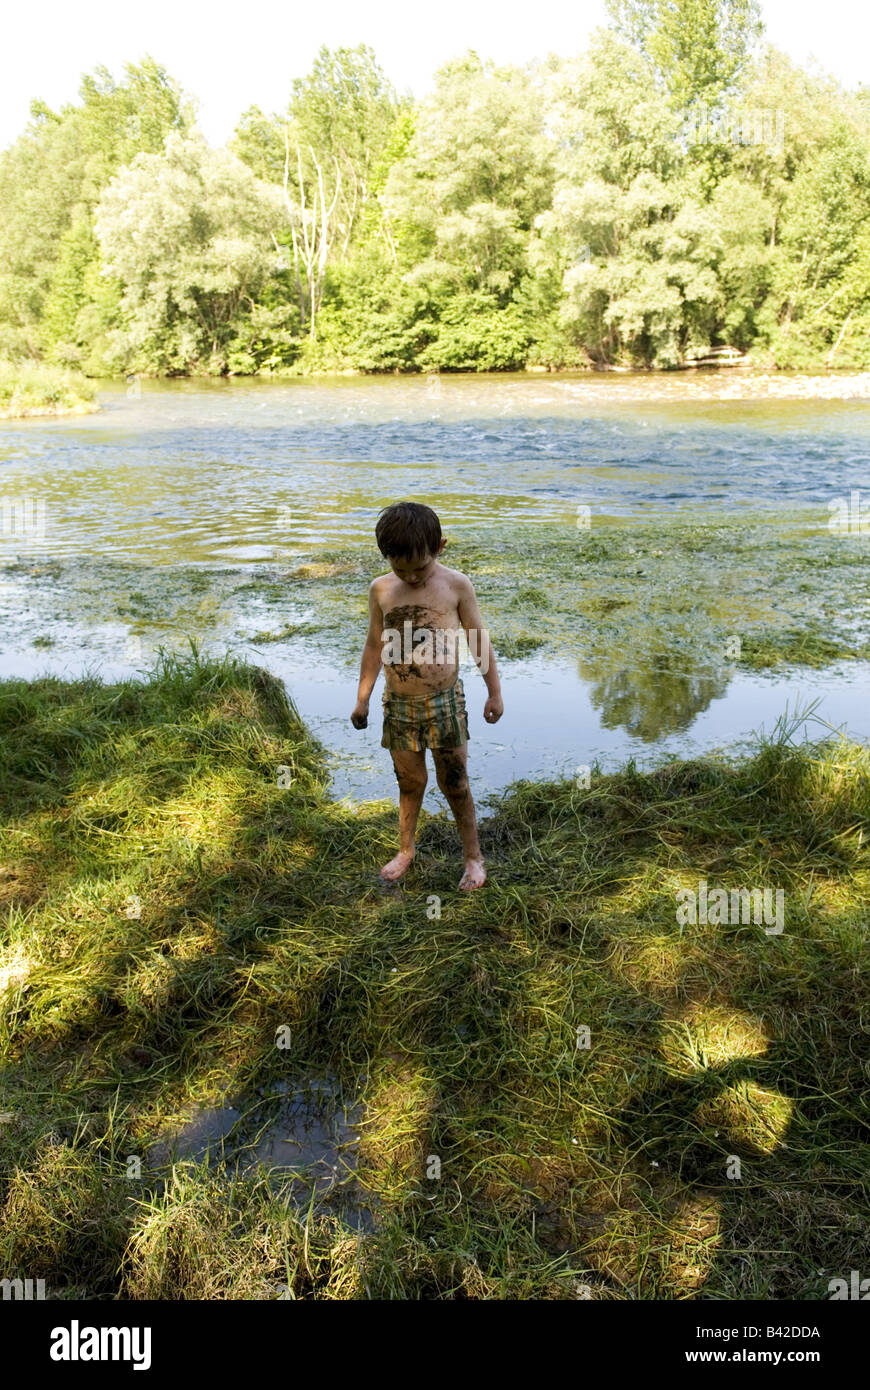 a young boy stands on a river bank looking down athis stomach covered in river mud and weed - Stock Image